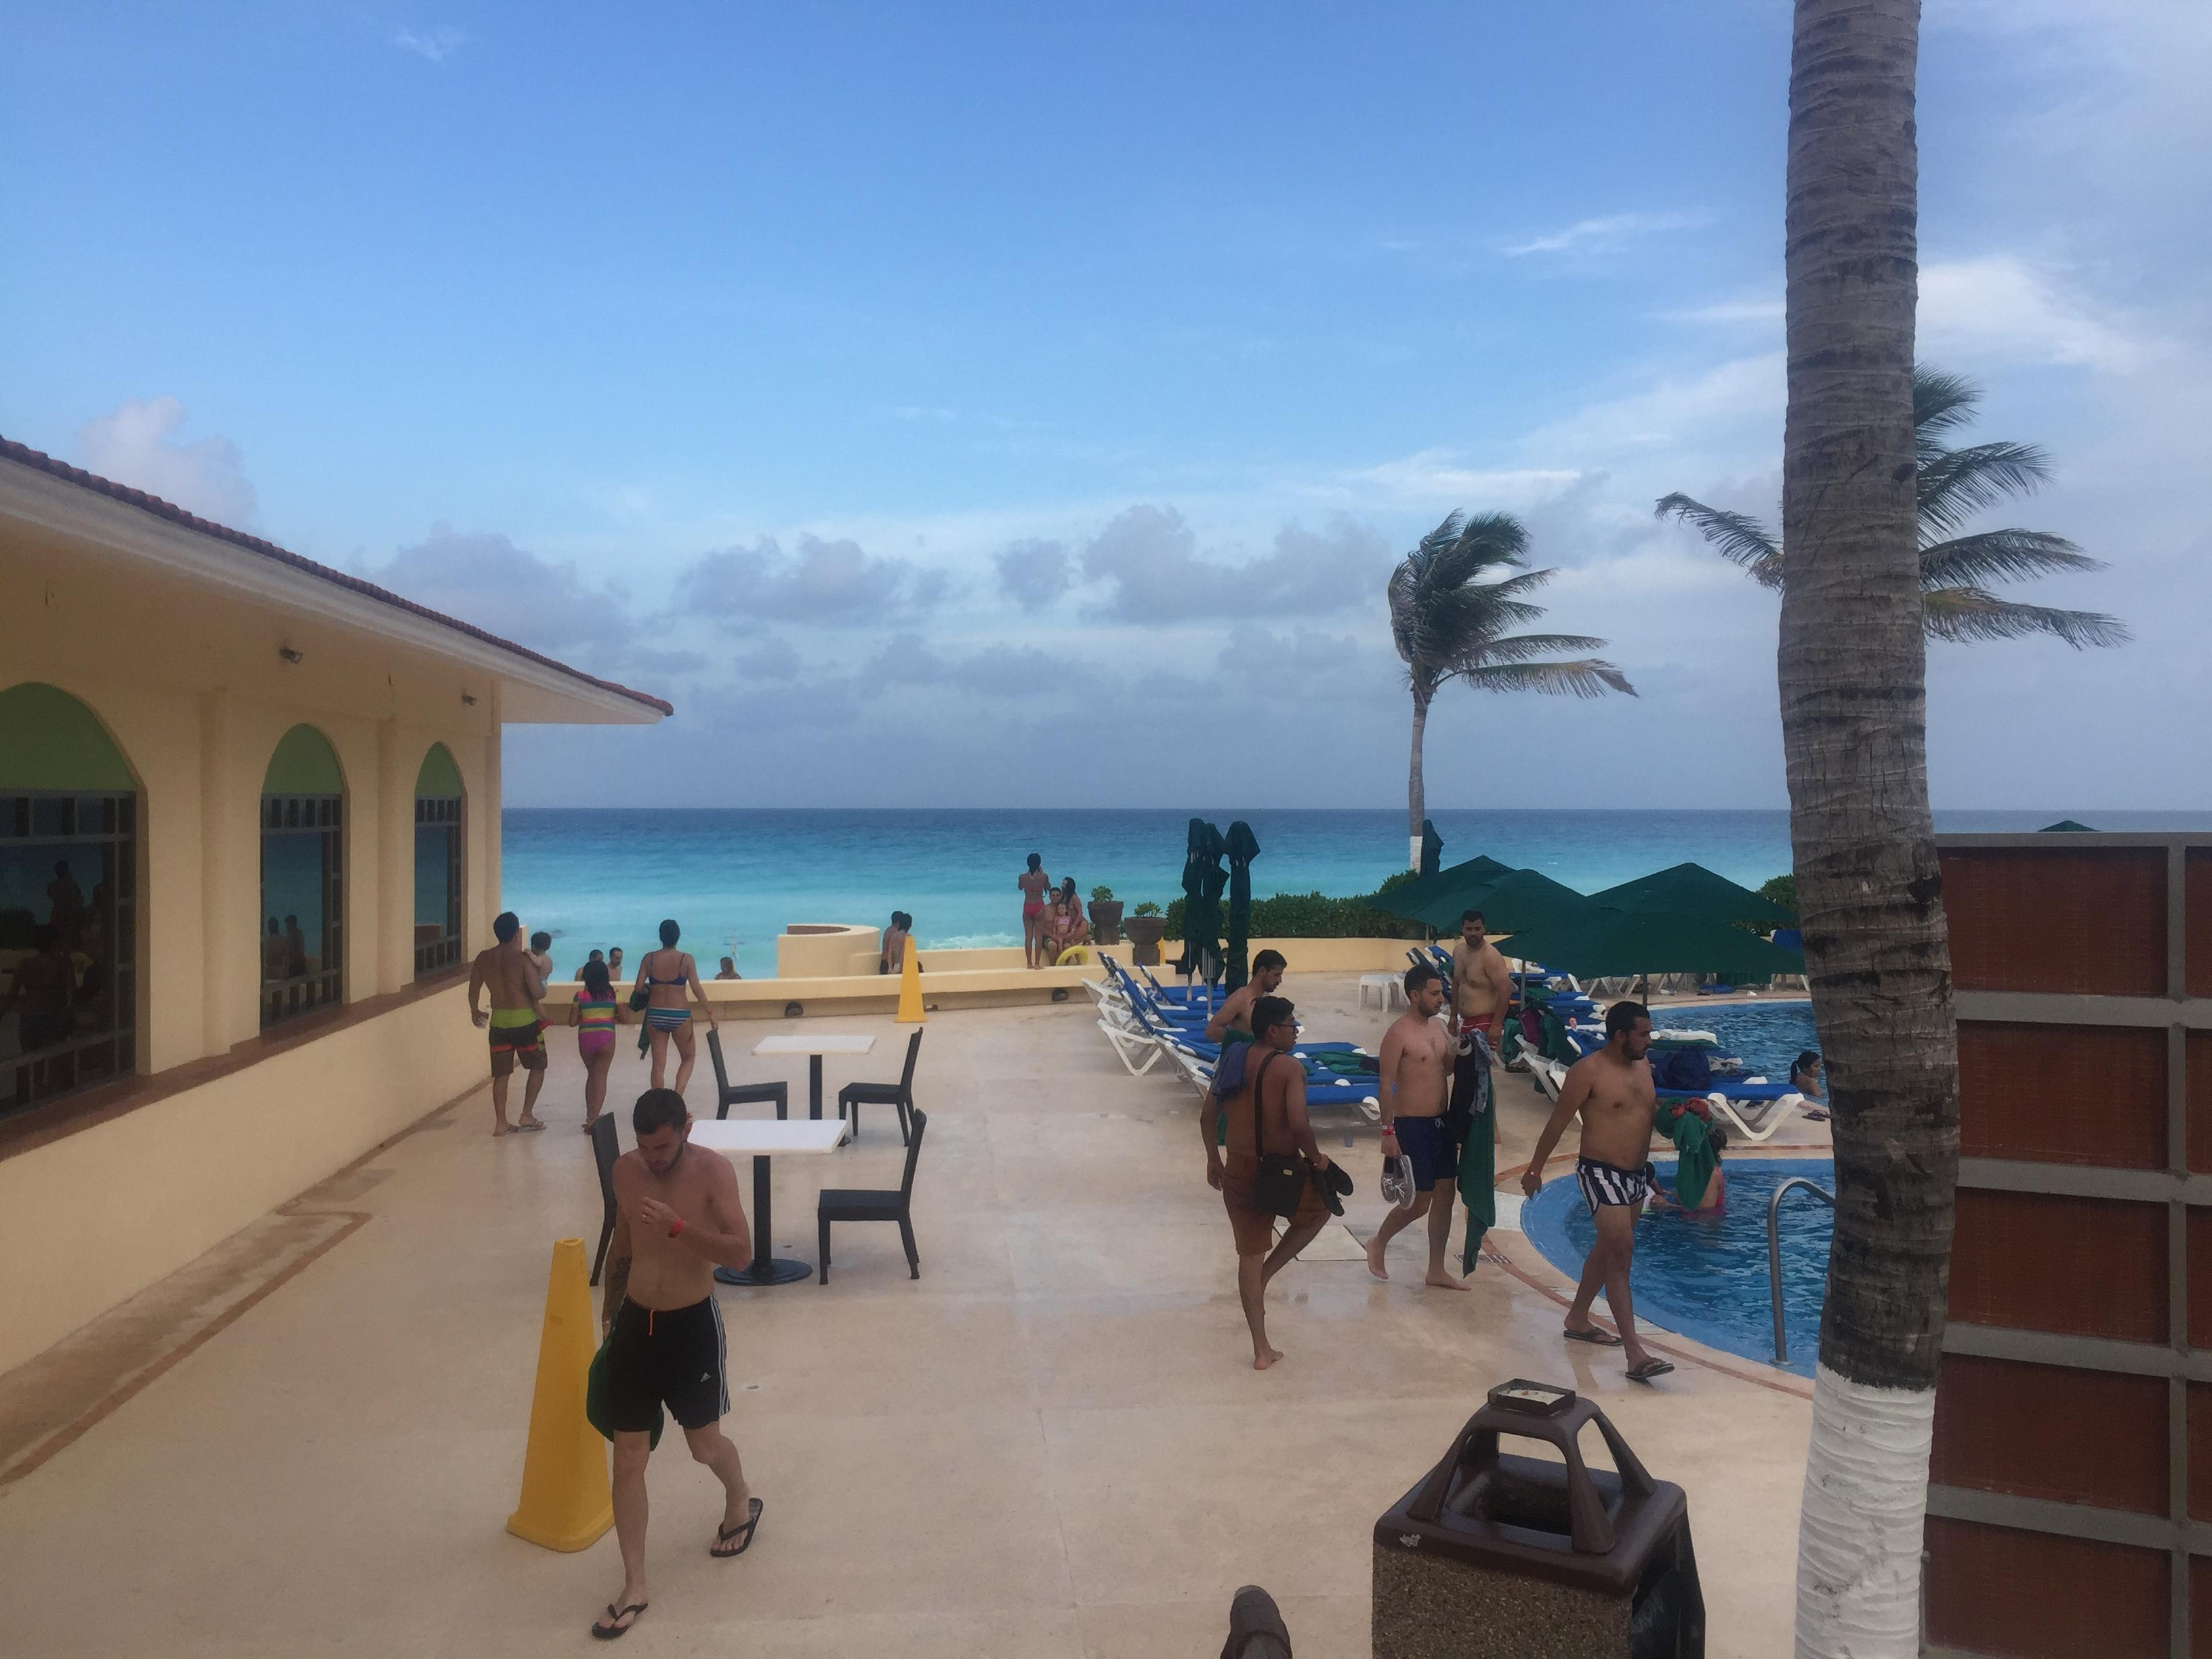 This was the pool area/ walkway to the beach